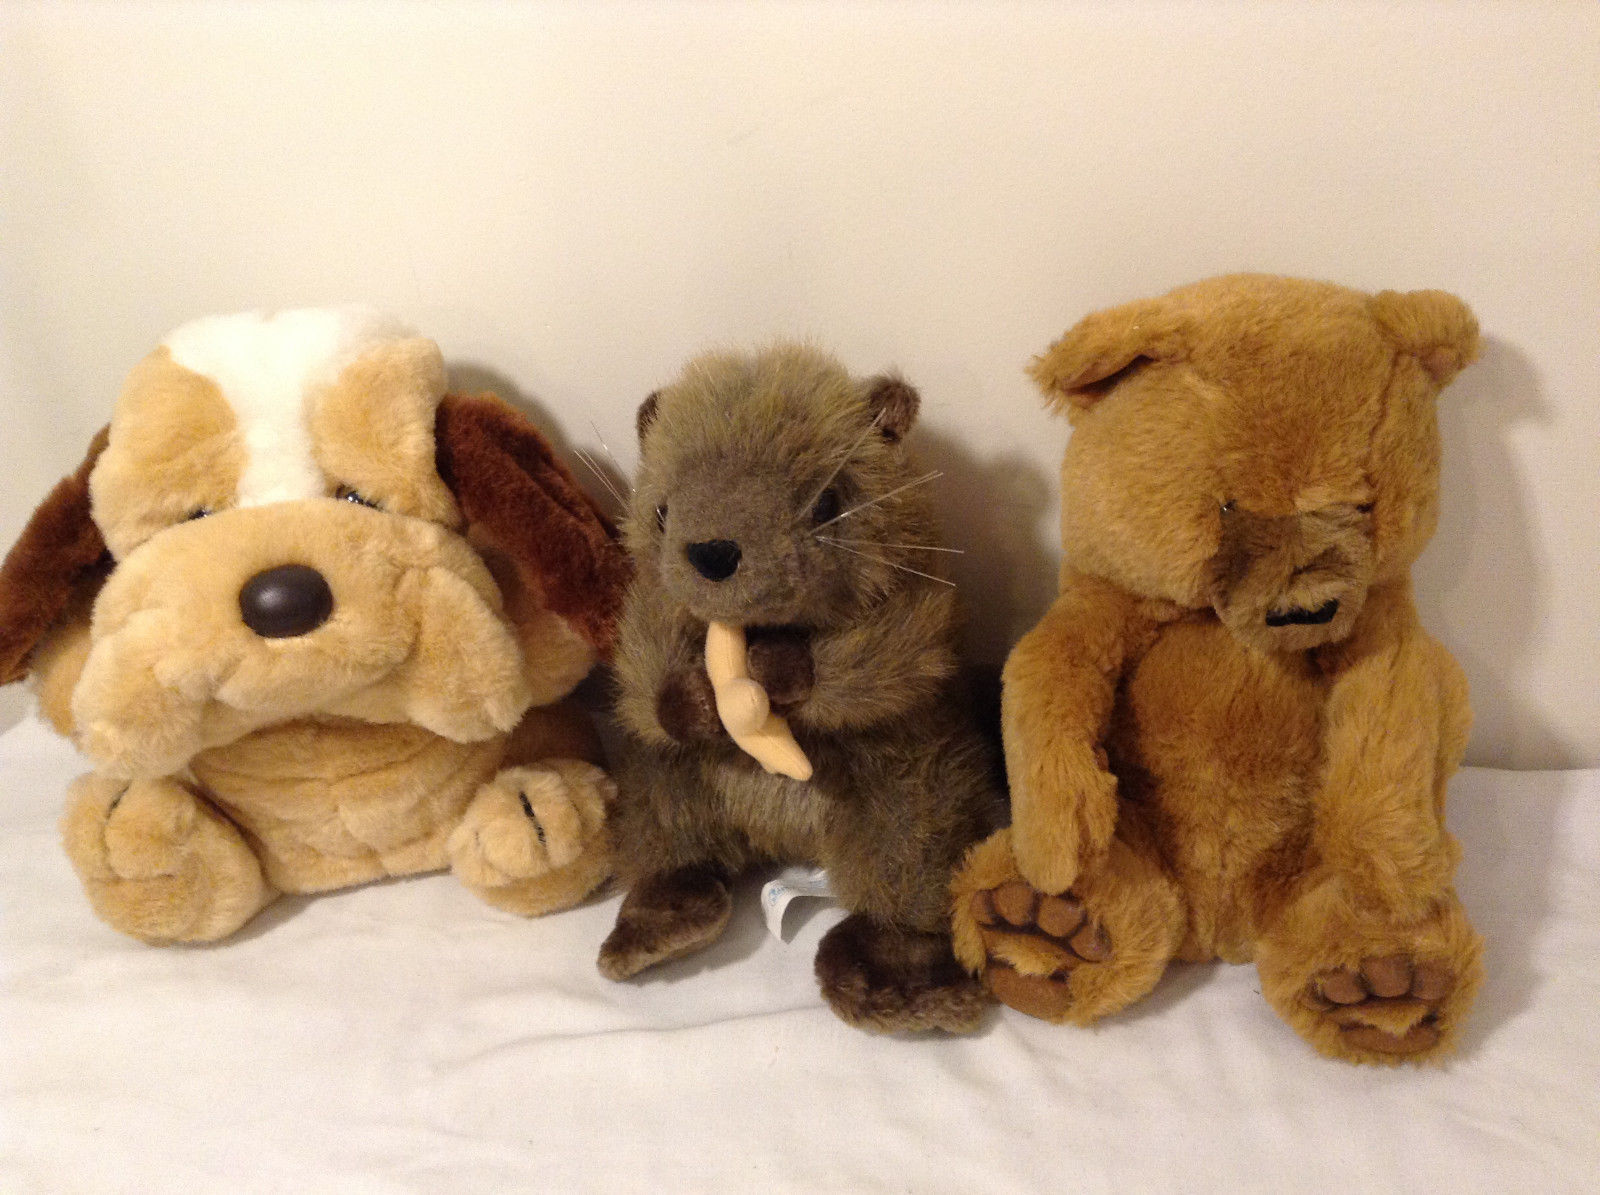 3 Plush Stuffed Animal Hand Puppets w/ Basset Hound Puppy + Otter + Teddy Bear